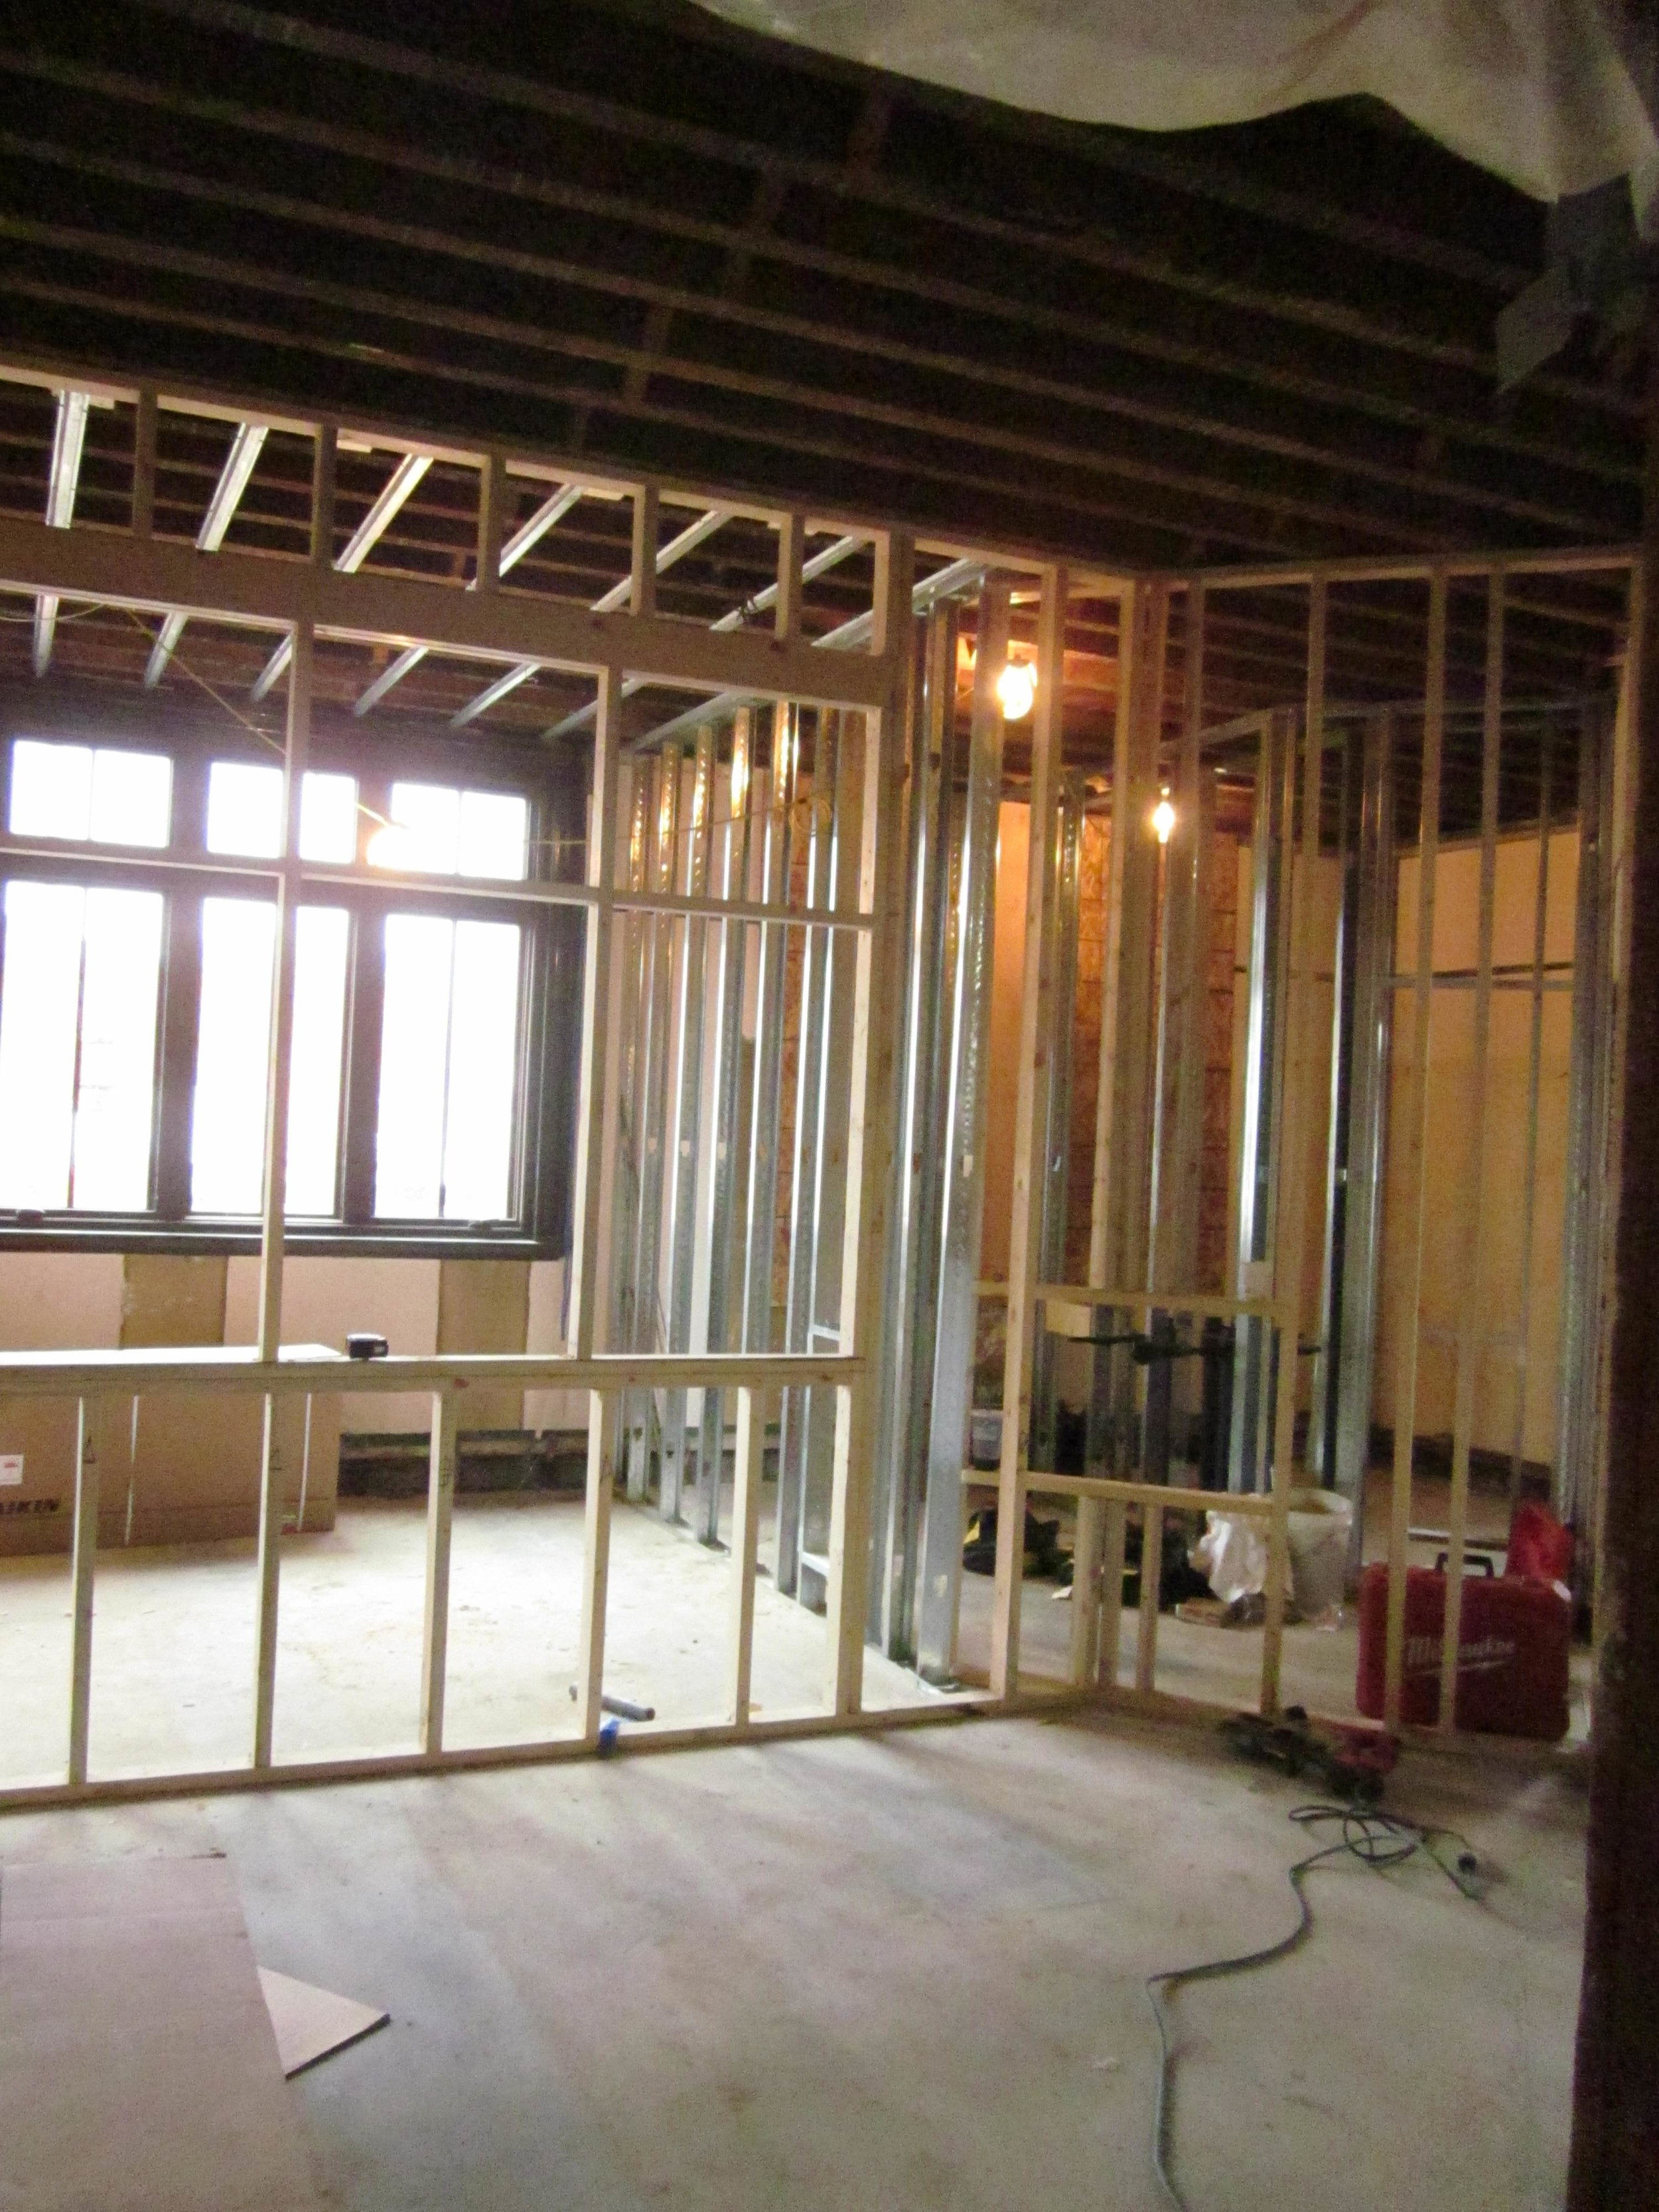 New staff workroom in former nonfiction room. New small meeting room to left and restrooms to right.